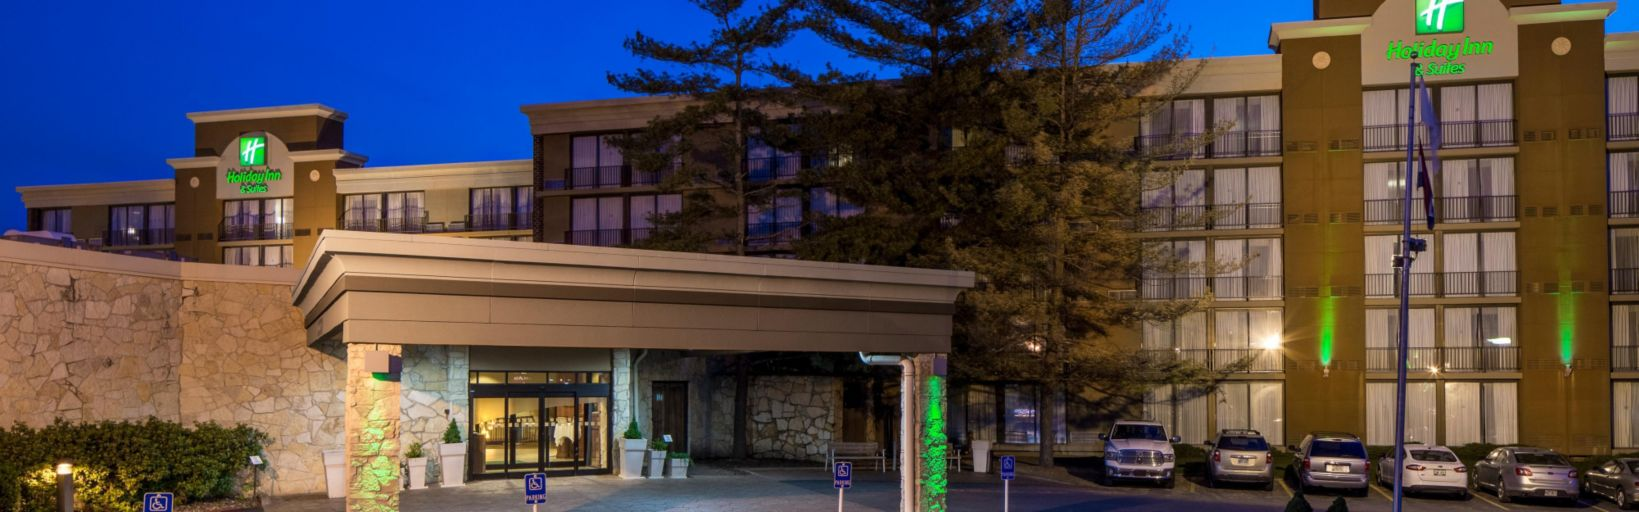 Holiday Inn Hotel & Suites Des Moines-Northwest Hotel by IHG